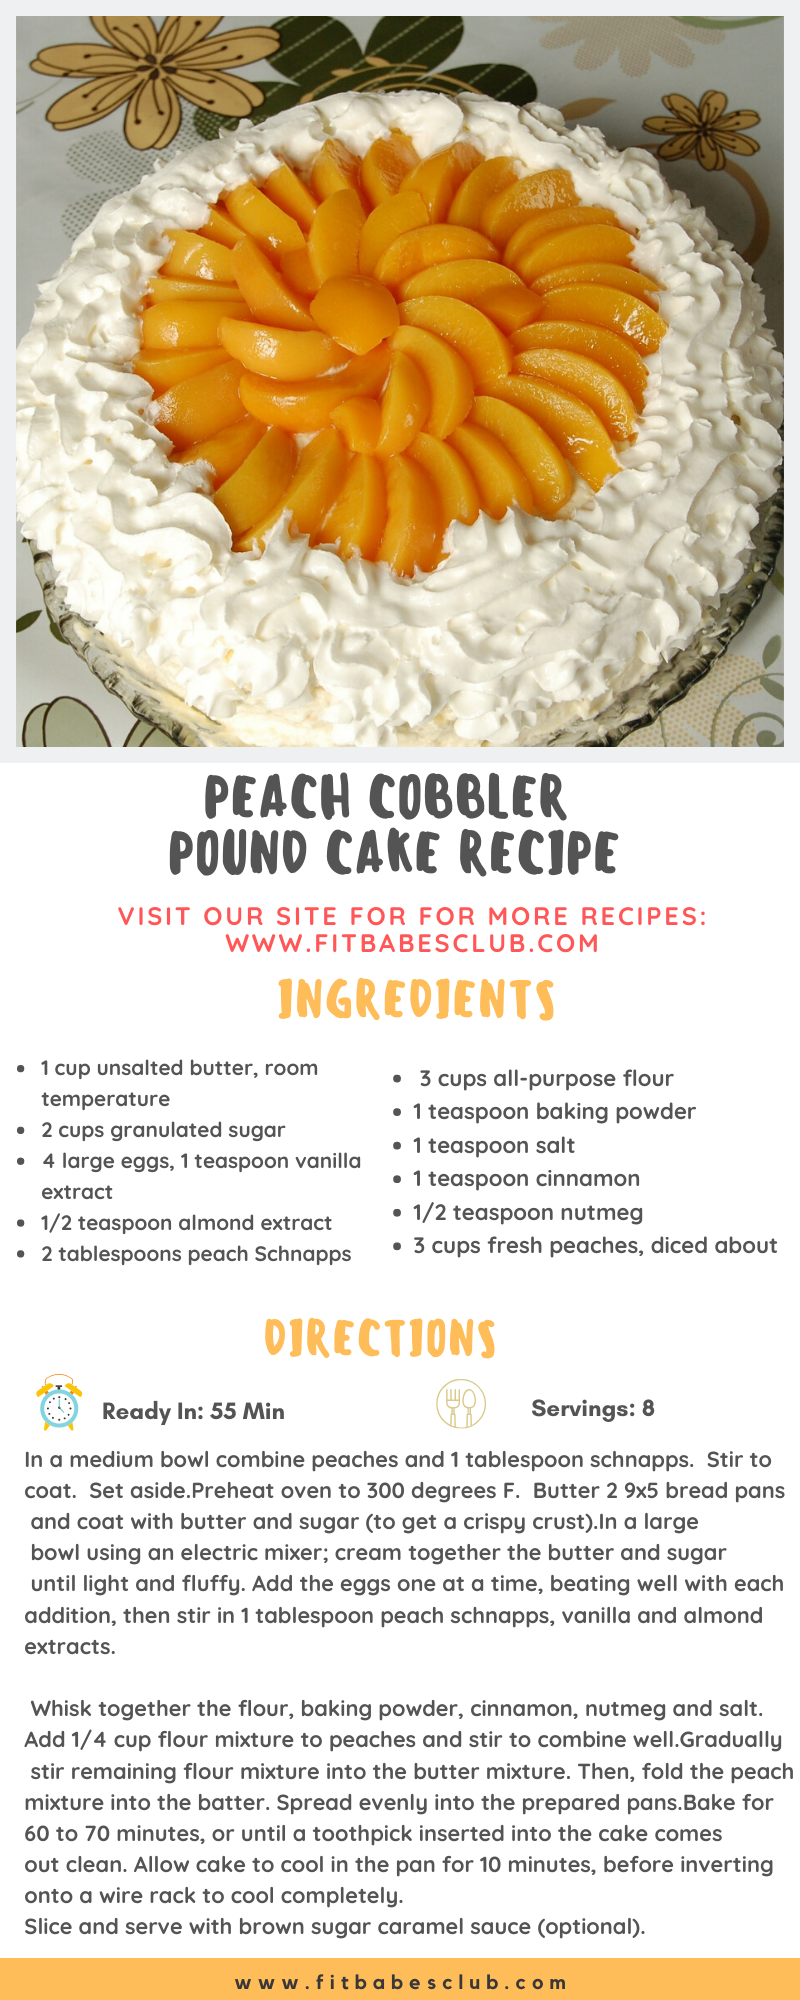 Peach Cobbler Pound Cake Recipe #peachcobblerpoundcake Here is Peach Cobbler Pound Cake recipe. Serving for 8 Person. #peachcobblerpoundcake